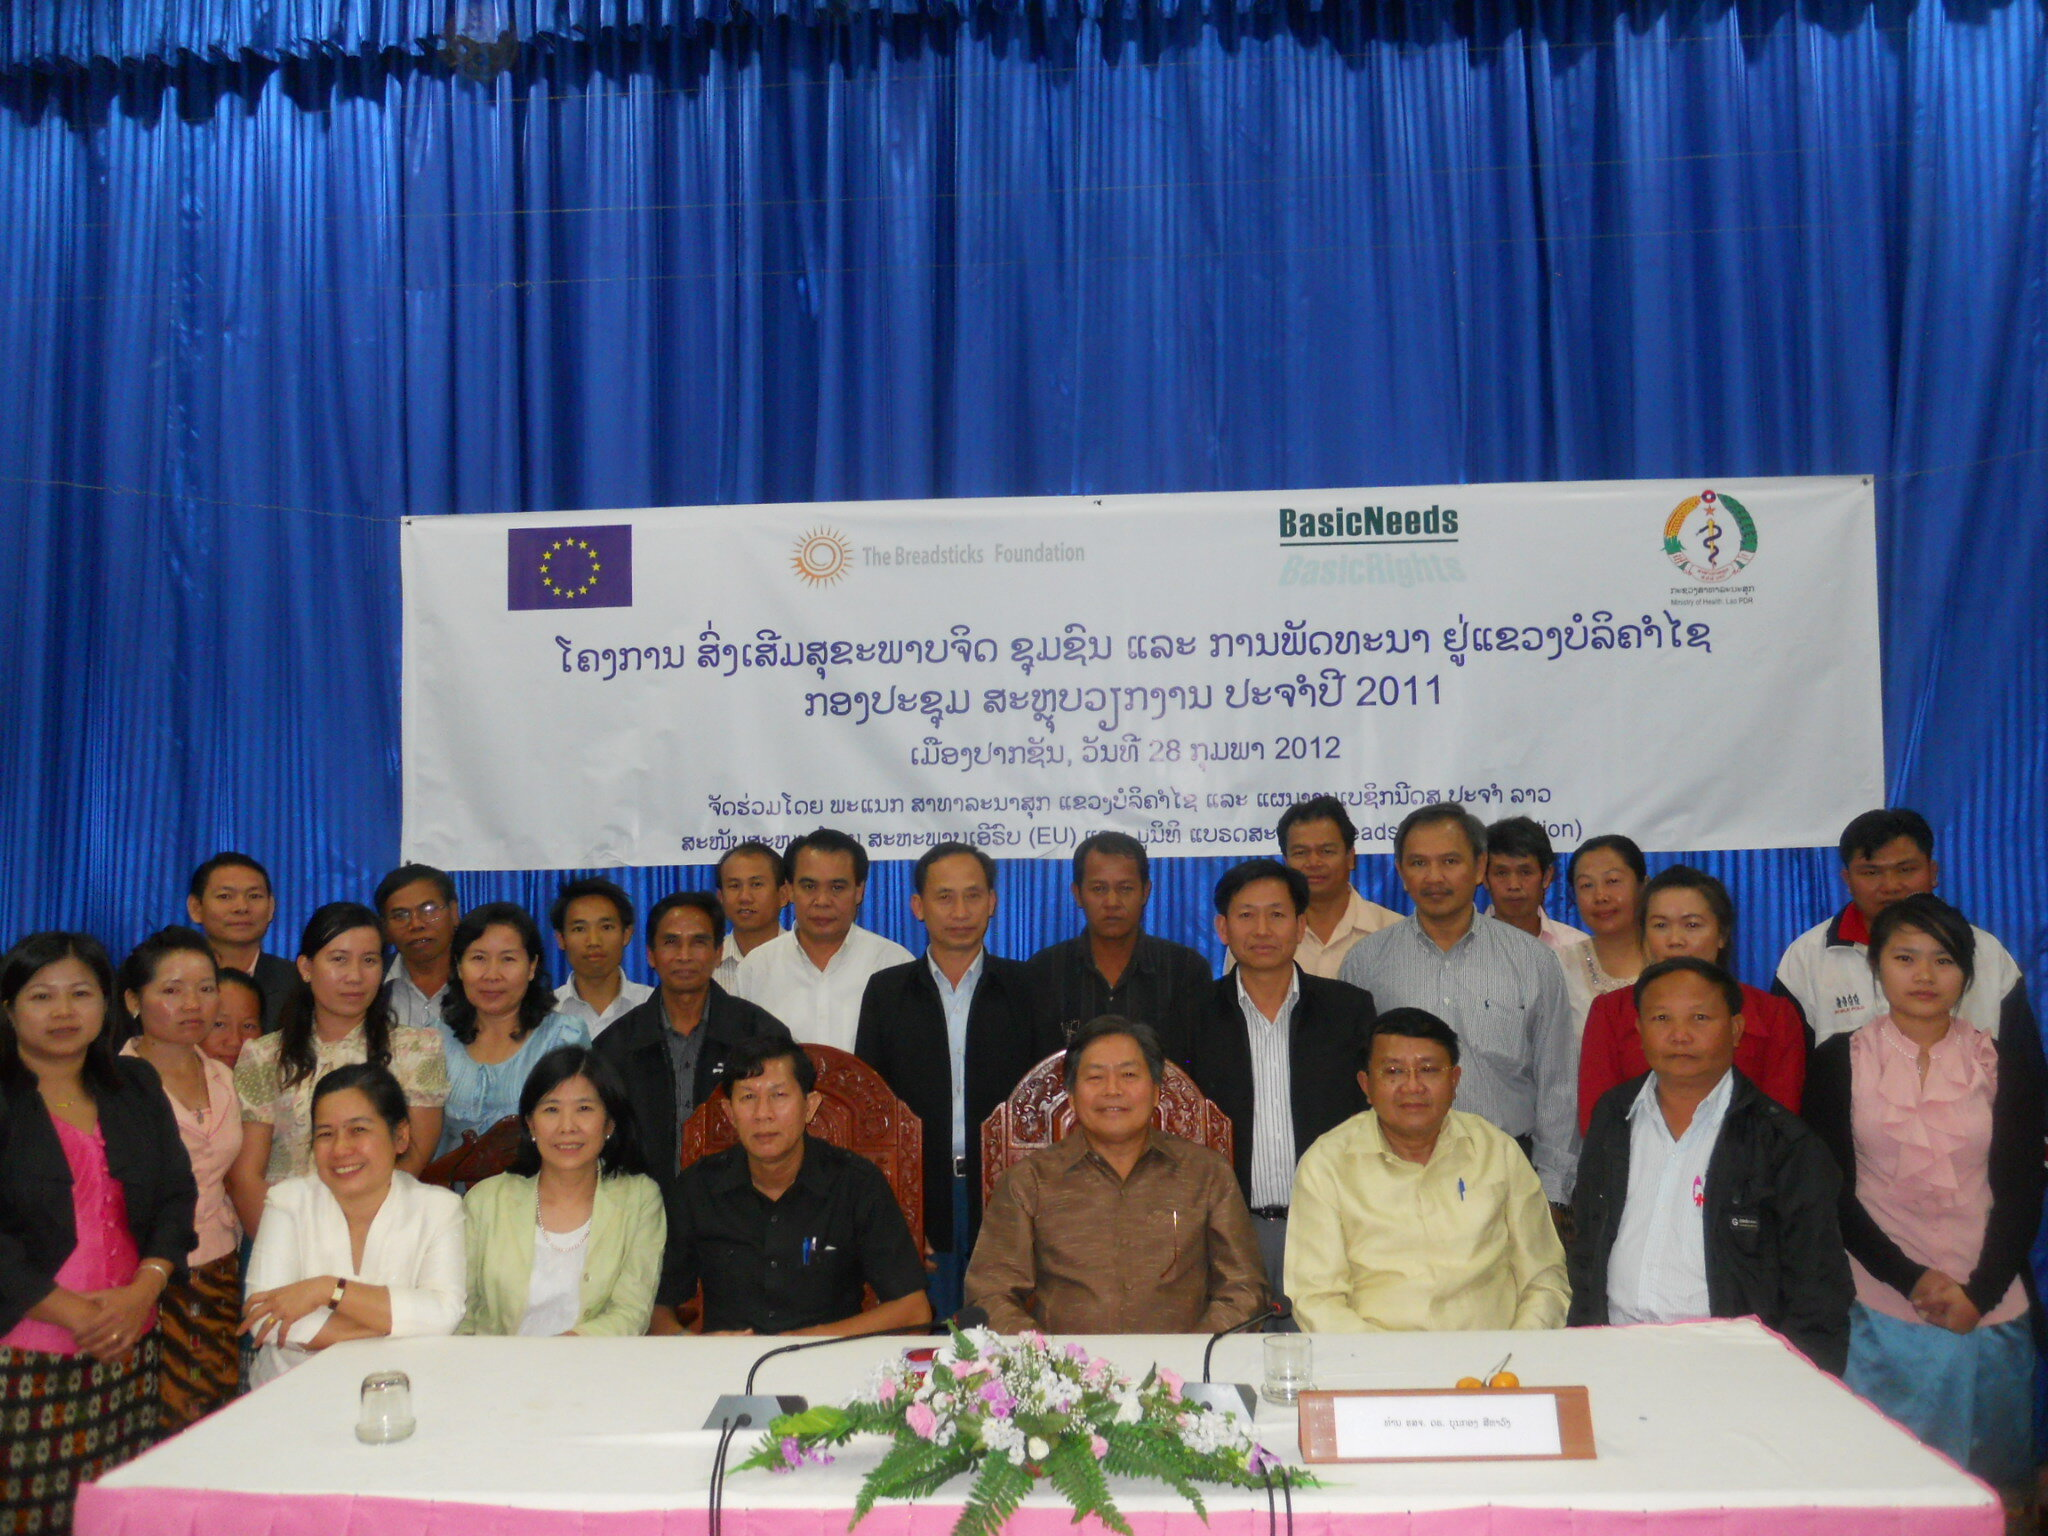 Annual meeting in Borikhamxay conducted in February 2012, chairedby the Vice-Minister of Health wearing brown shirt. Chan.JPG